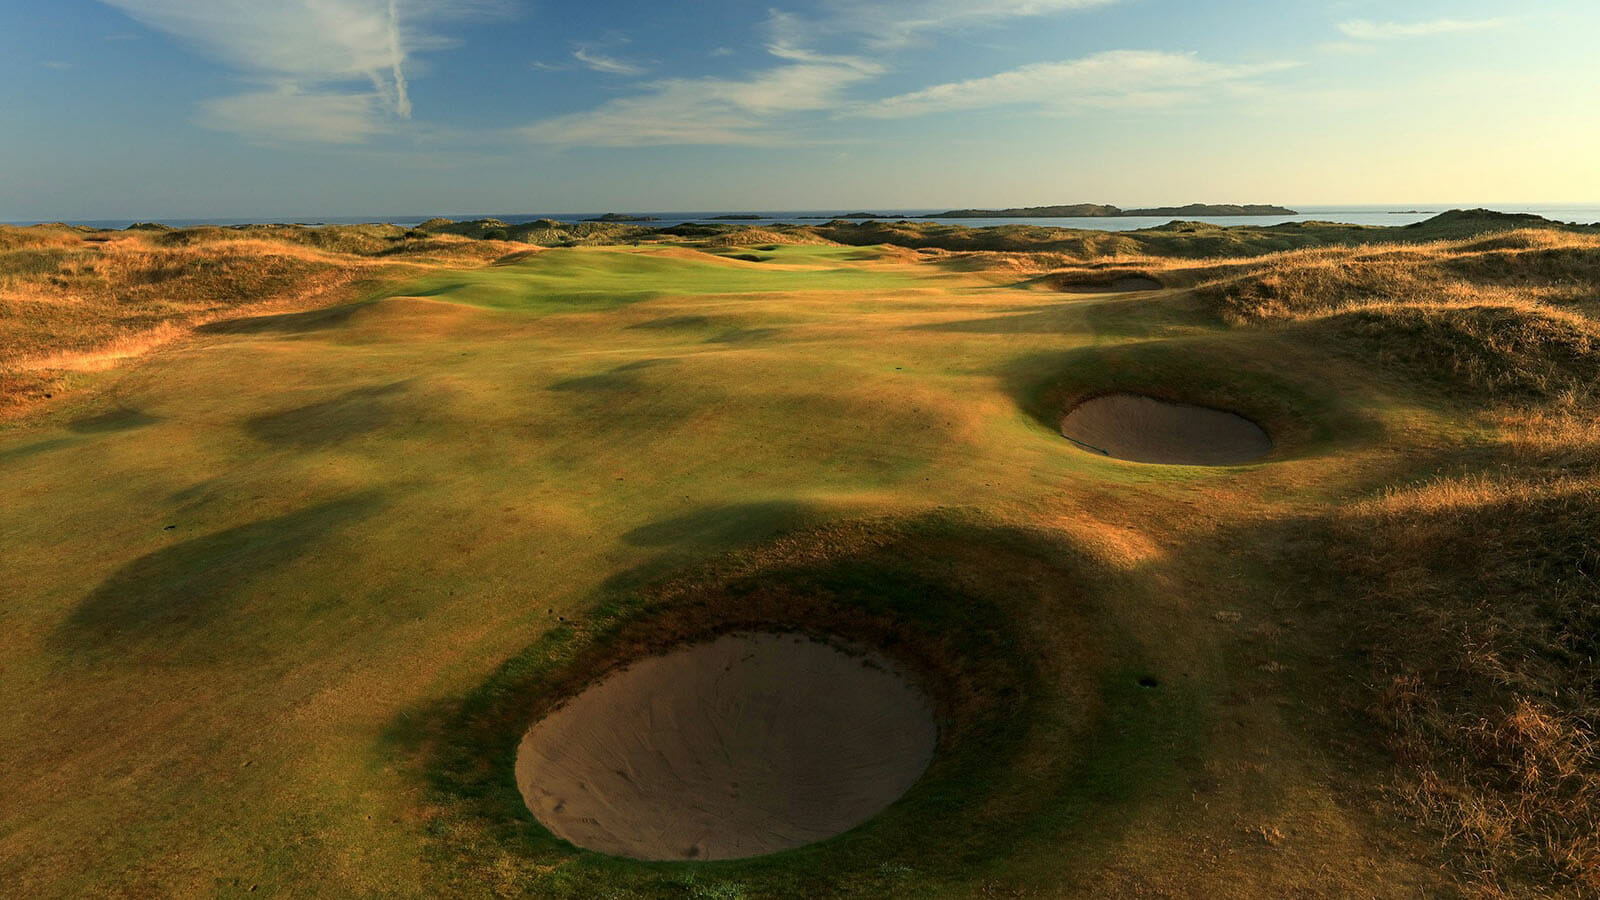 Aerial view of the 2nd green and deep pot bunkers with long shadows at Royal Portrush Dunluce Golf Course, Portrush, County Antrim, Northern Ireland